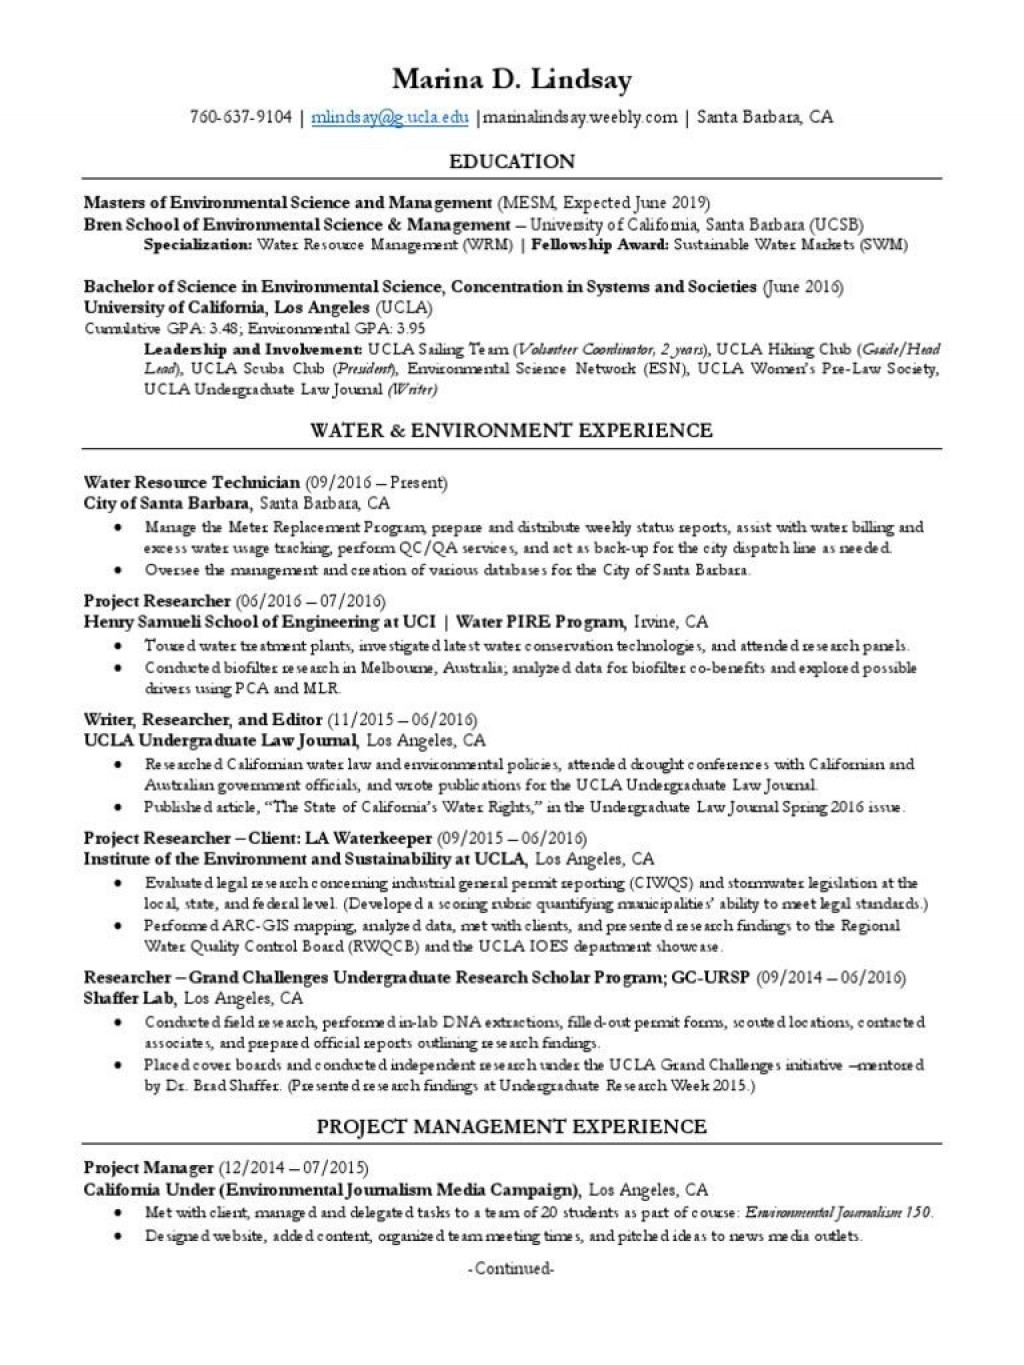 024 Apply Texas Essay Topics Picture Gallery For Website 768x1024 Archaicawful Prompt C Example Topic Examples A Large